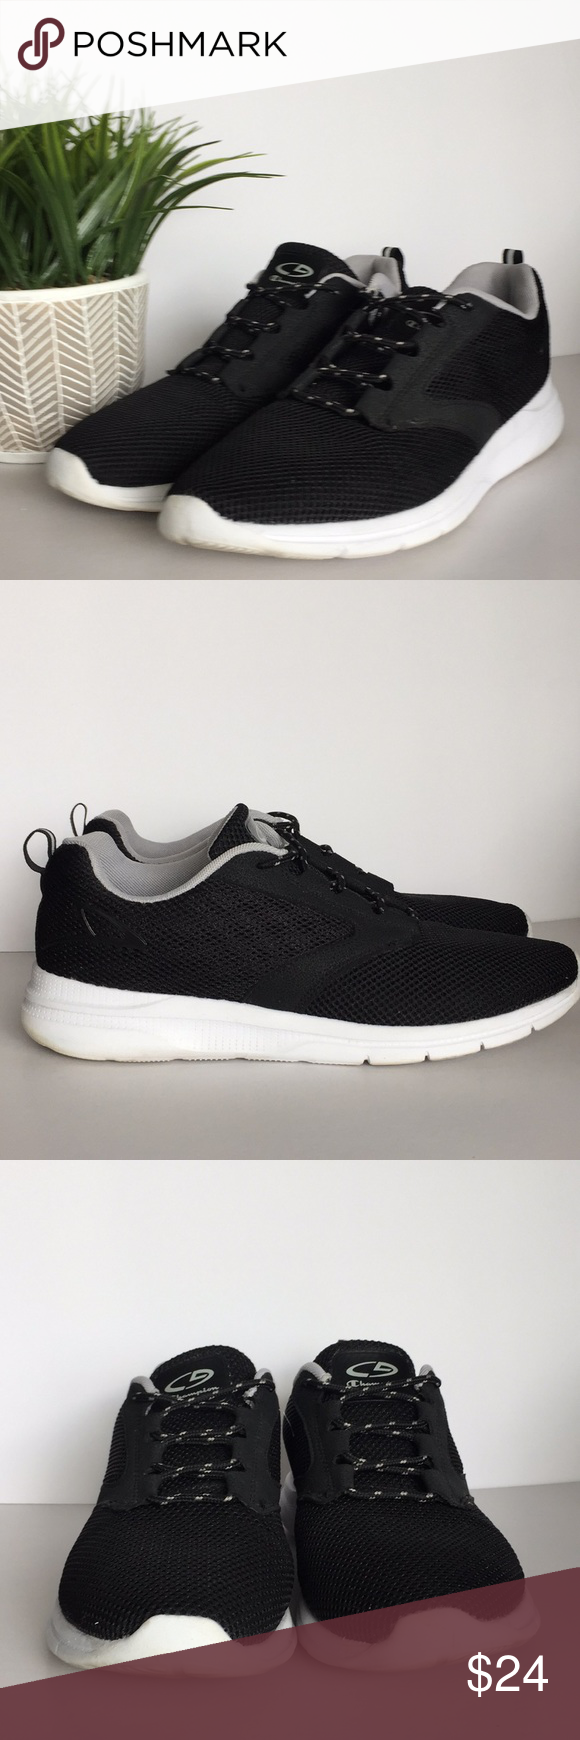 296a7a2941c47 ⚡ ⚡️Stylish Athletic Sneakers by C9 Champion Black Athletic Shoes by C9  Champion. Very comfy for walking running exercise. These shoes have been  worn as ...